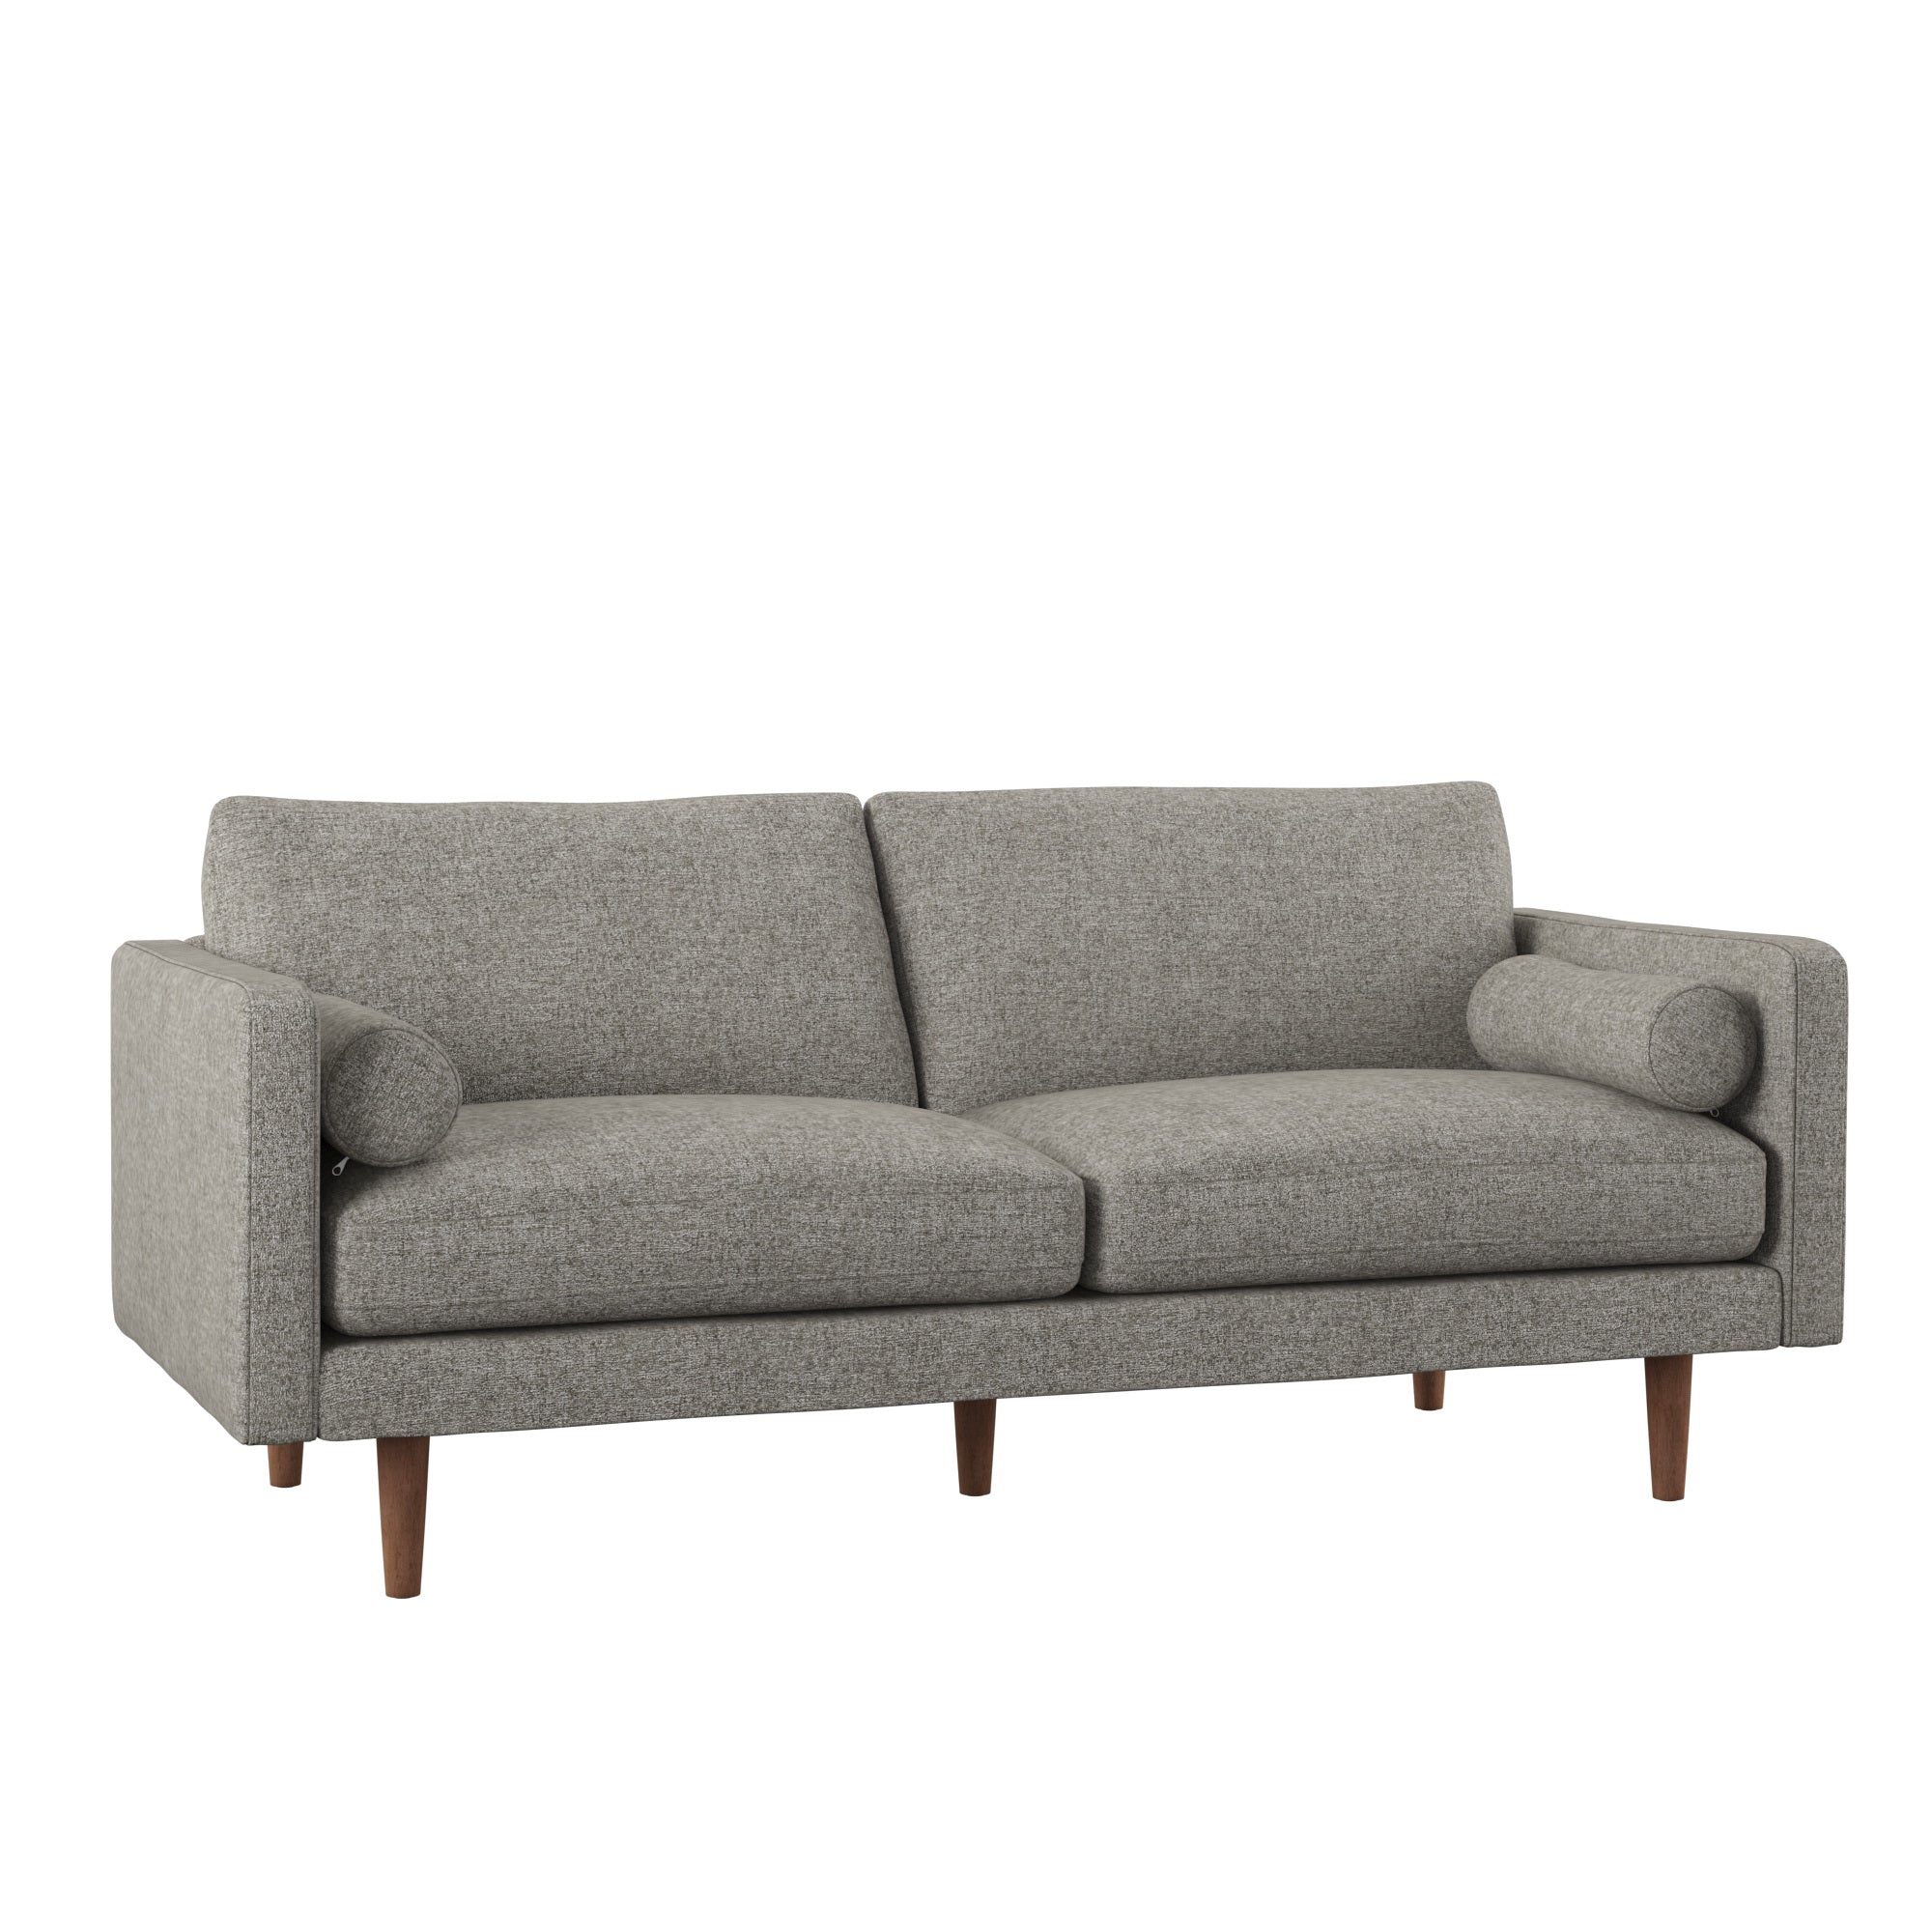 Mid-Century Tapered Leg Sofa with Pillows - Grey